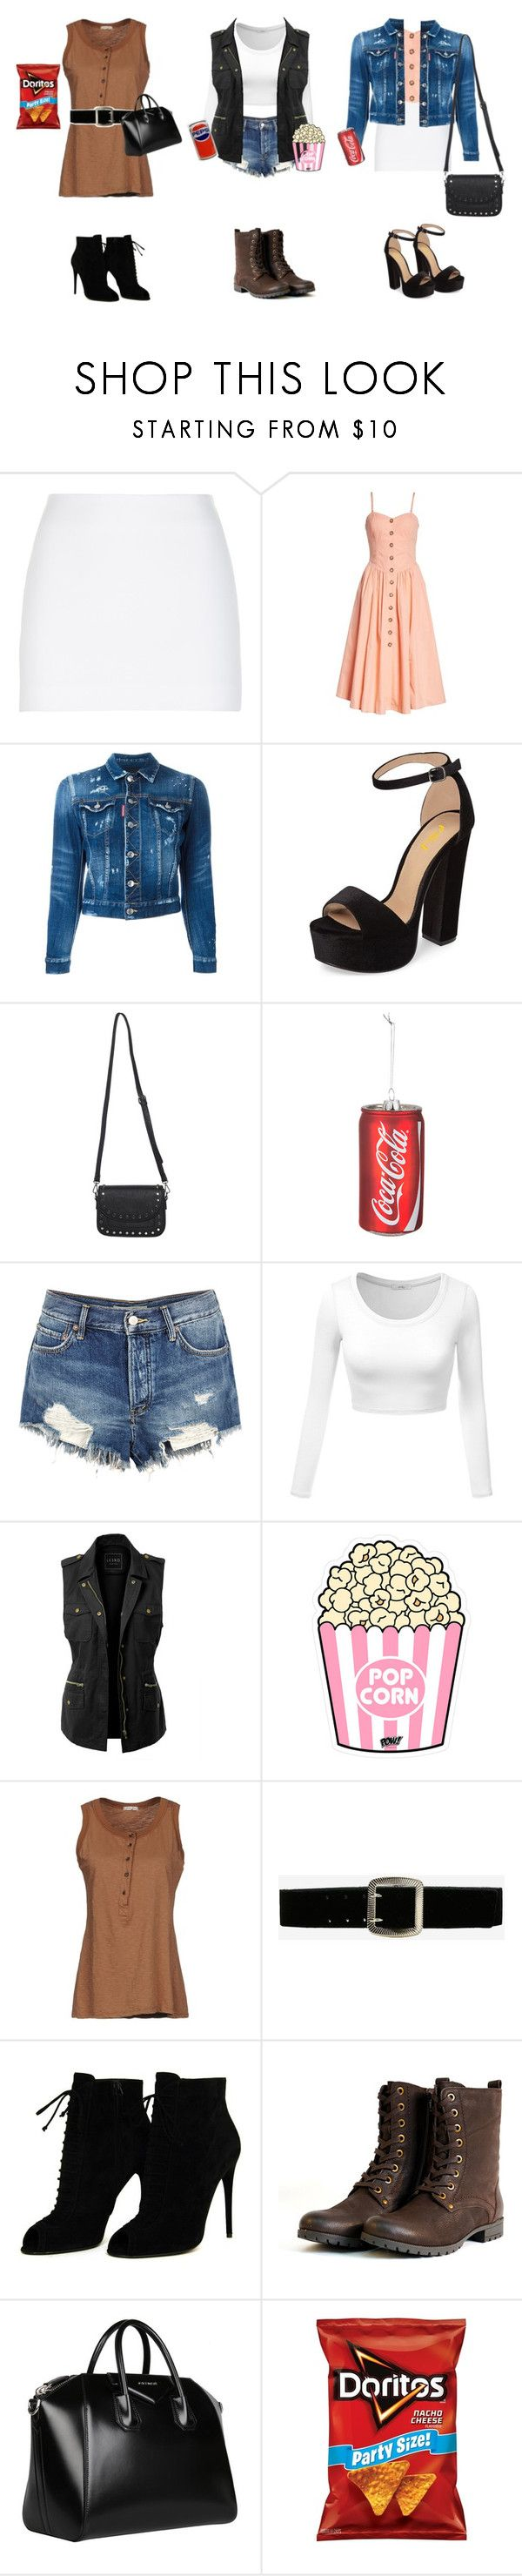 """Bad Mom Movie Premier"" by christianeberha ❤ liked on Polyvore featuring La Perla, Free People, Dsquared2, Kurt Adler, LE3NO, Pôdevache, Golden Goose, Express, Tom Ford and Givenchy"